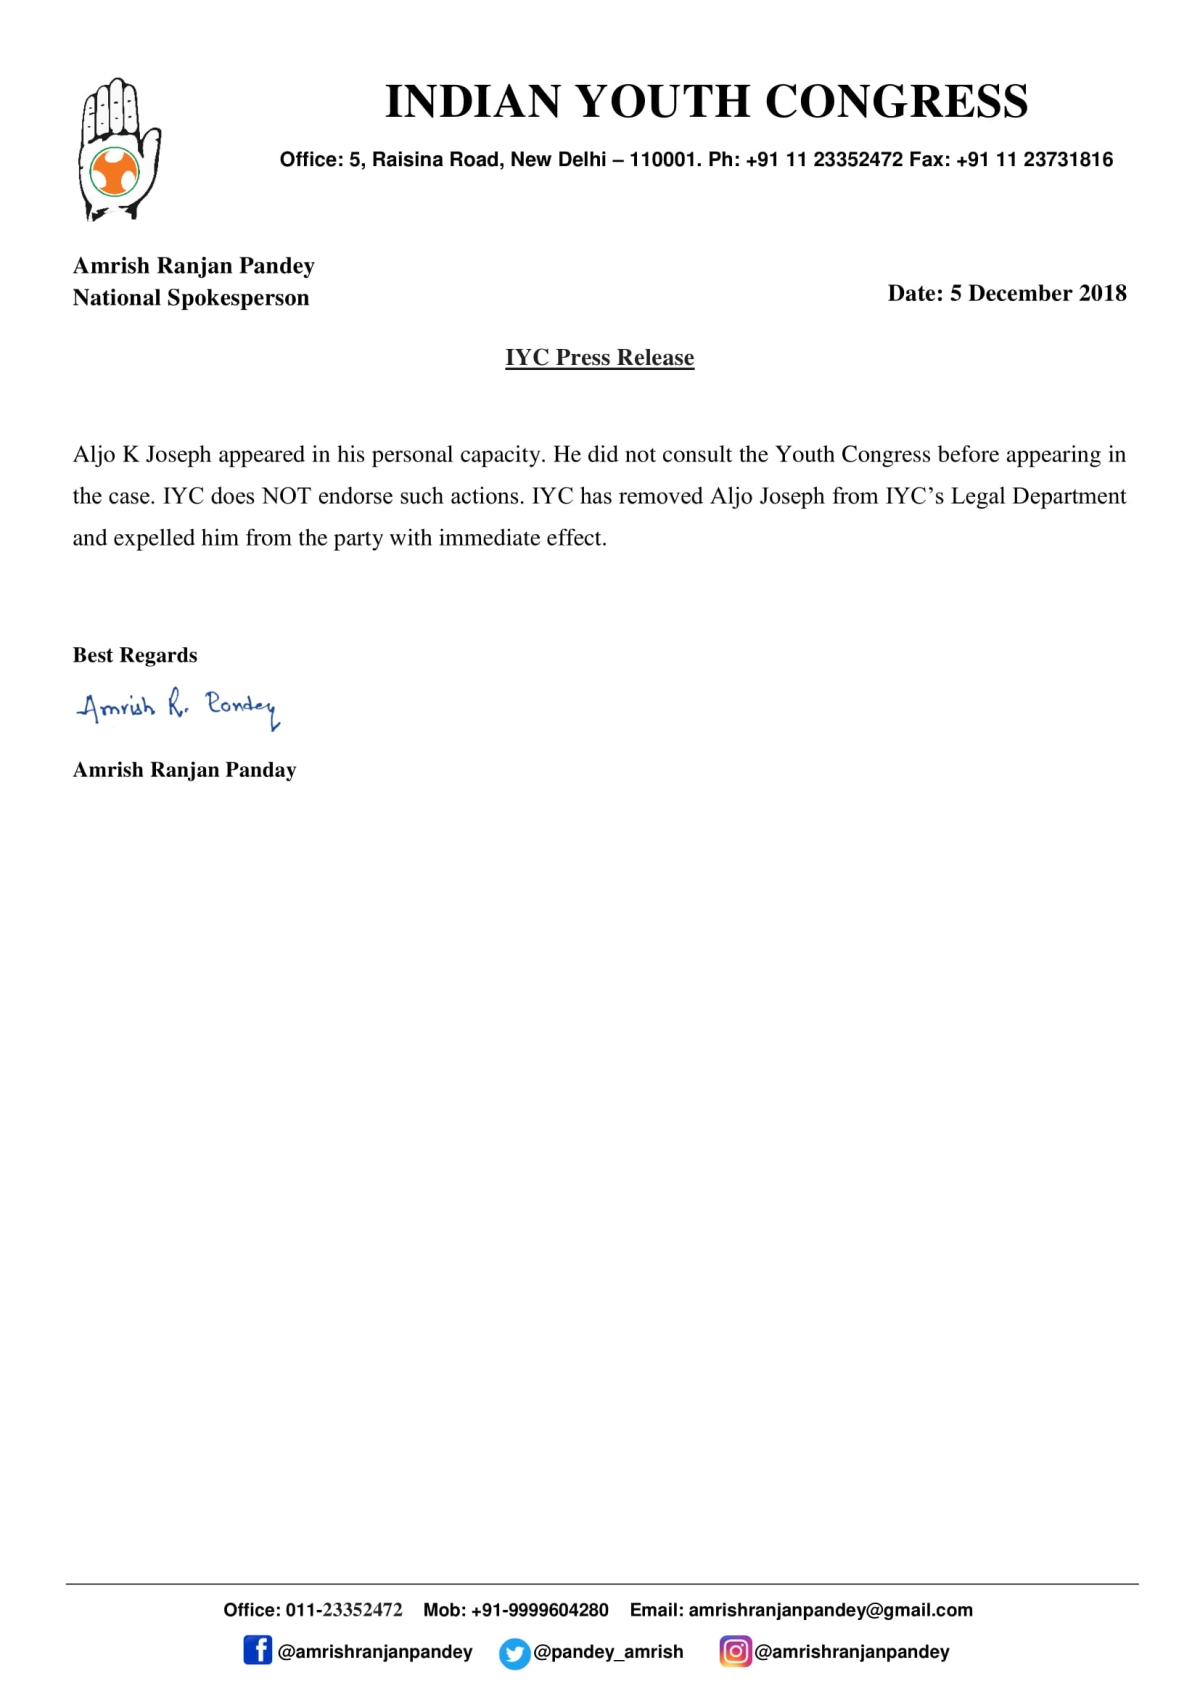 Indian Youth Congress' statement